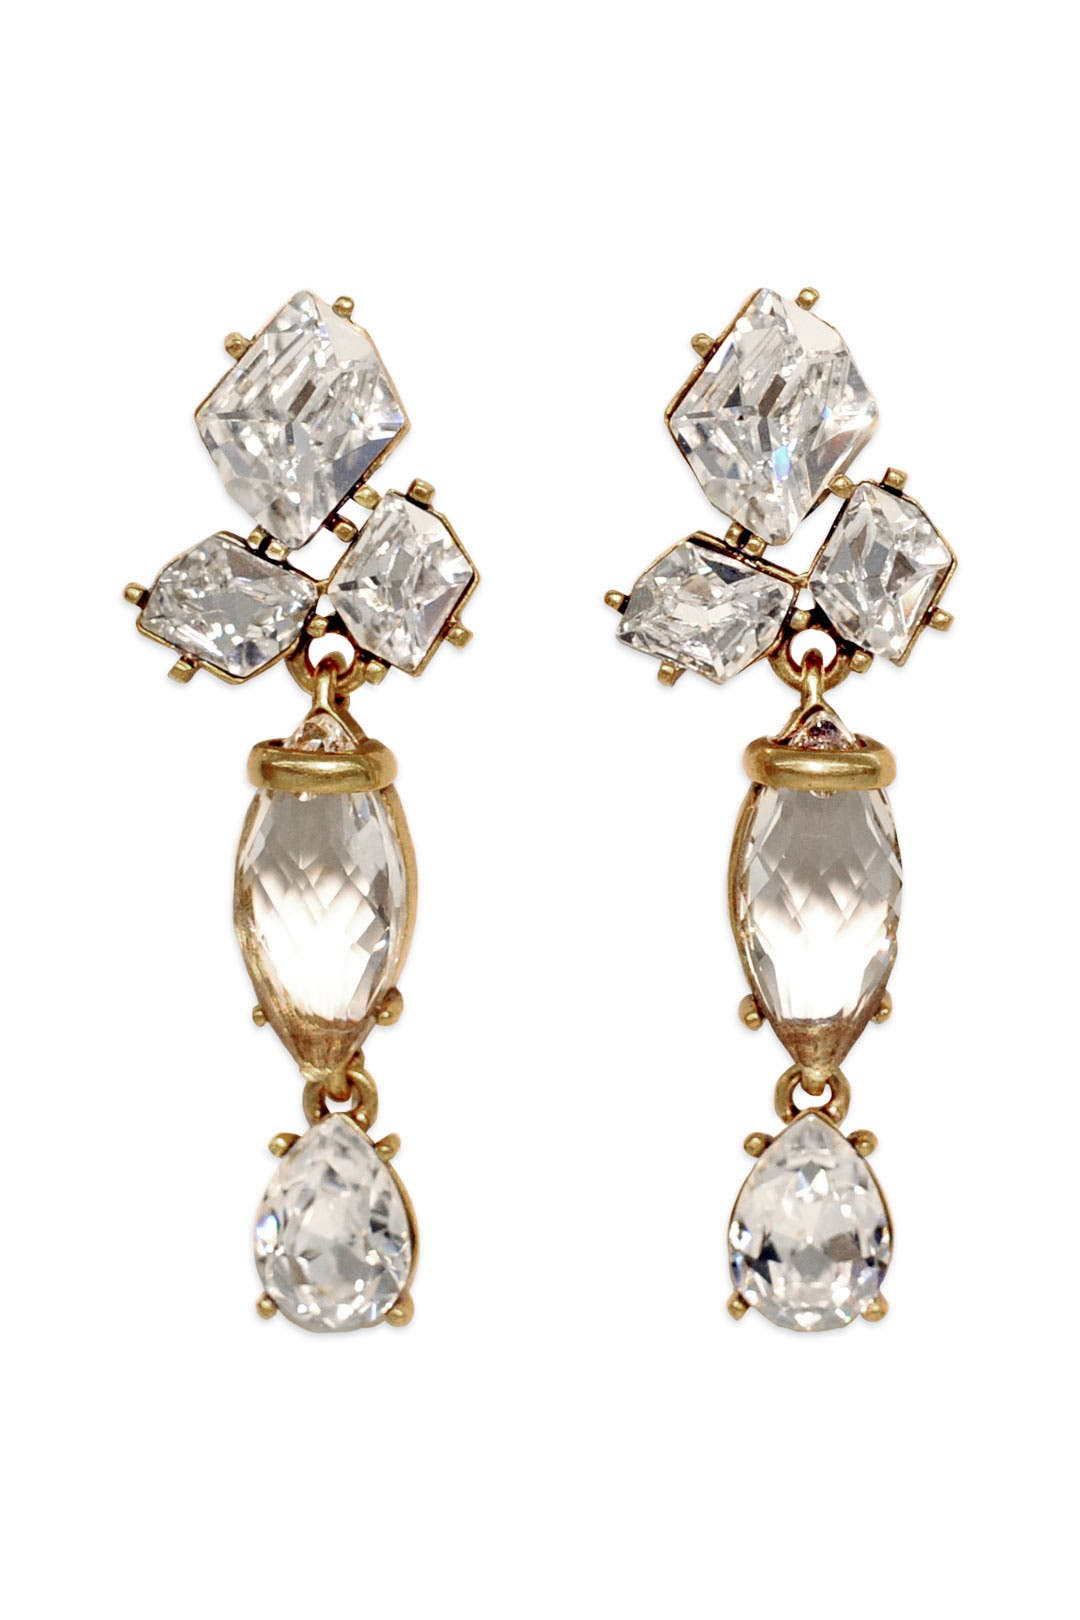 Halcyon Cluster Earrings by Oscar de la Renta